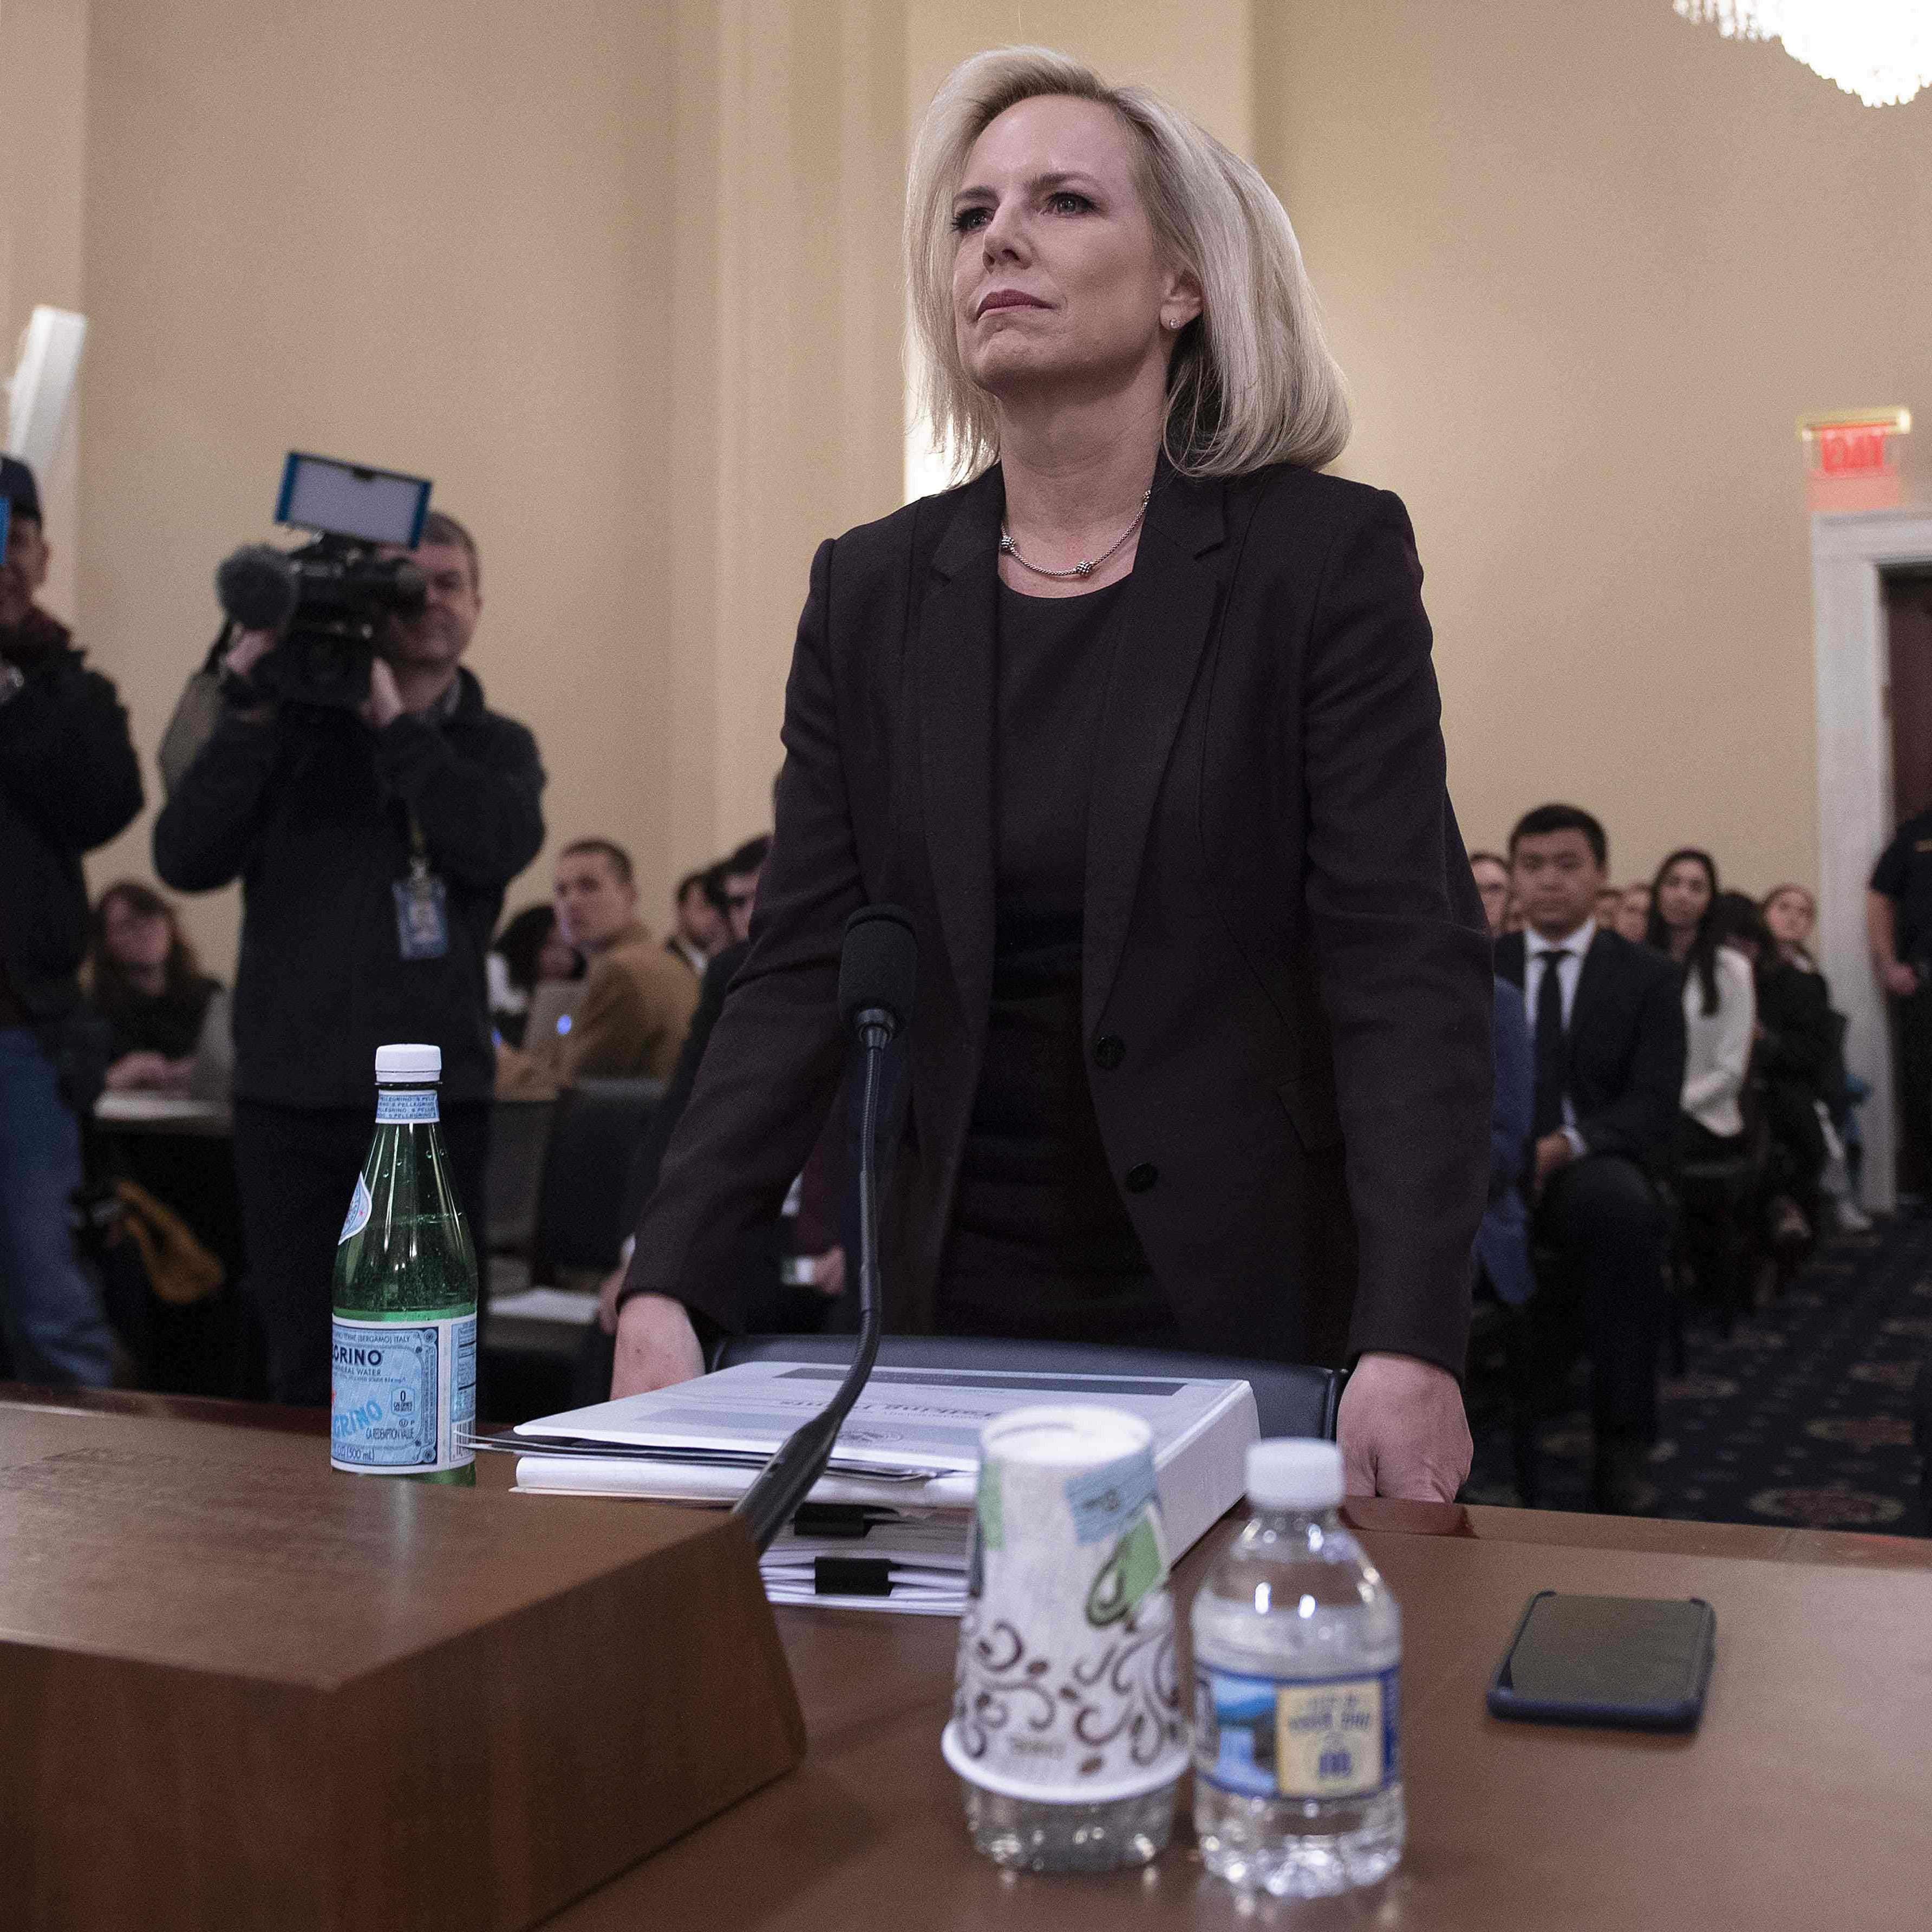 Democrats attack Trump immigration policy; Kirstjen Nielsen grilled over family separations